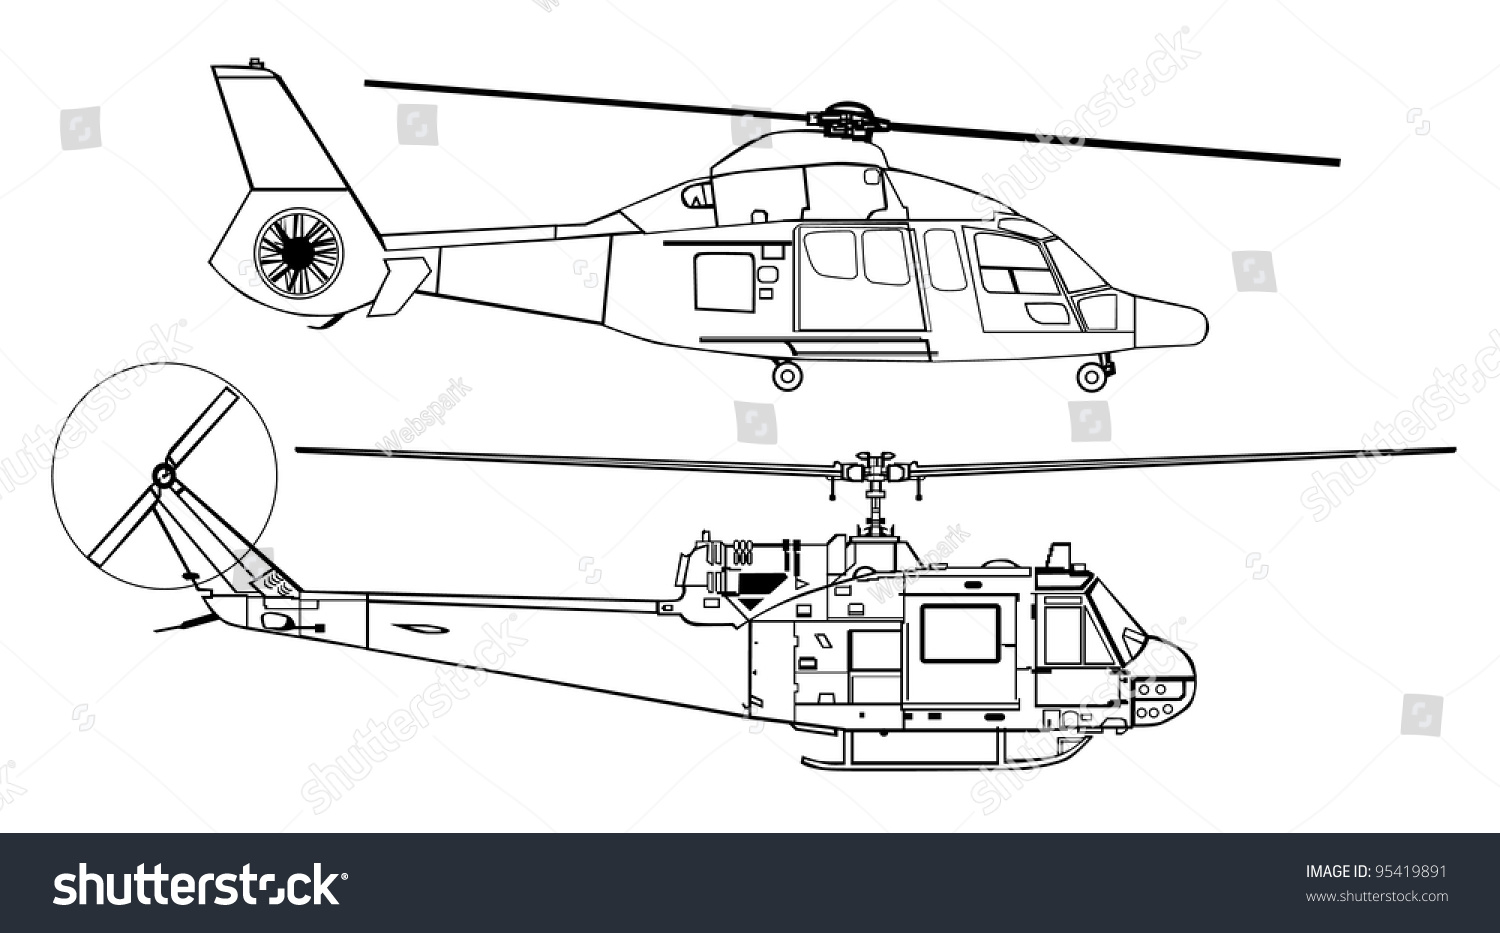 Line Drawing Helicopter : Helicopter line drawing diagram stock vector